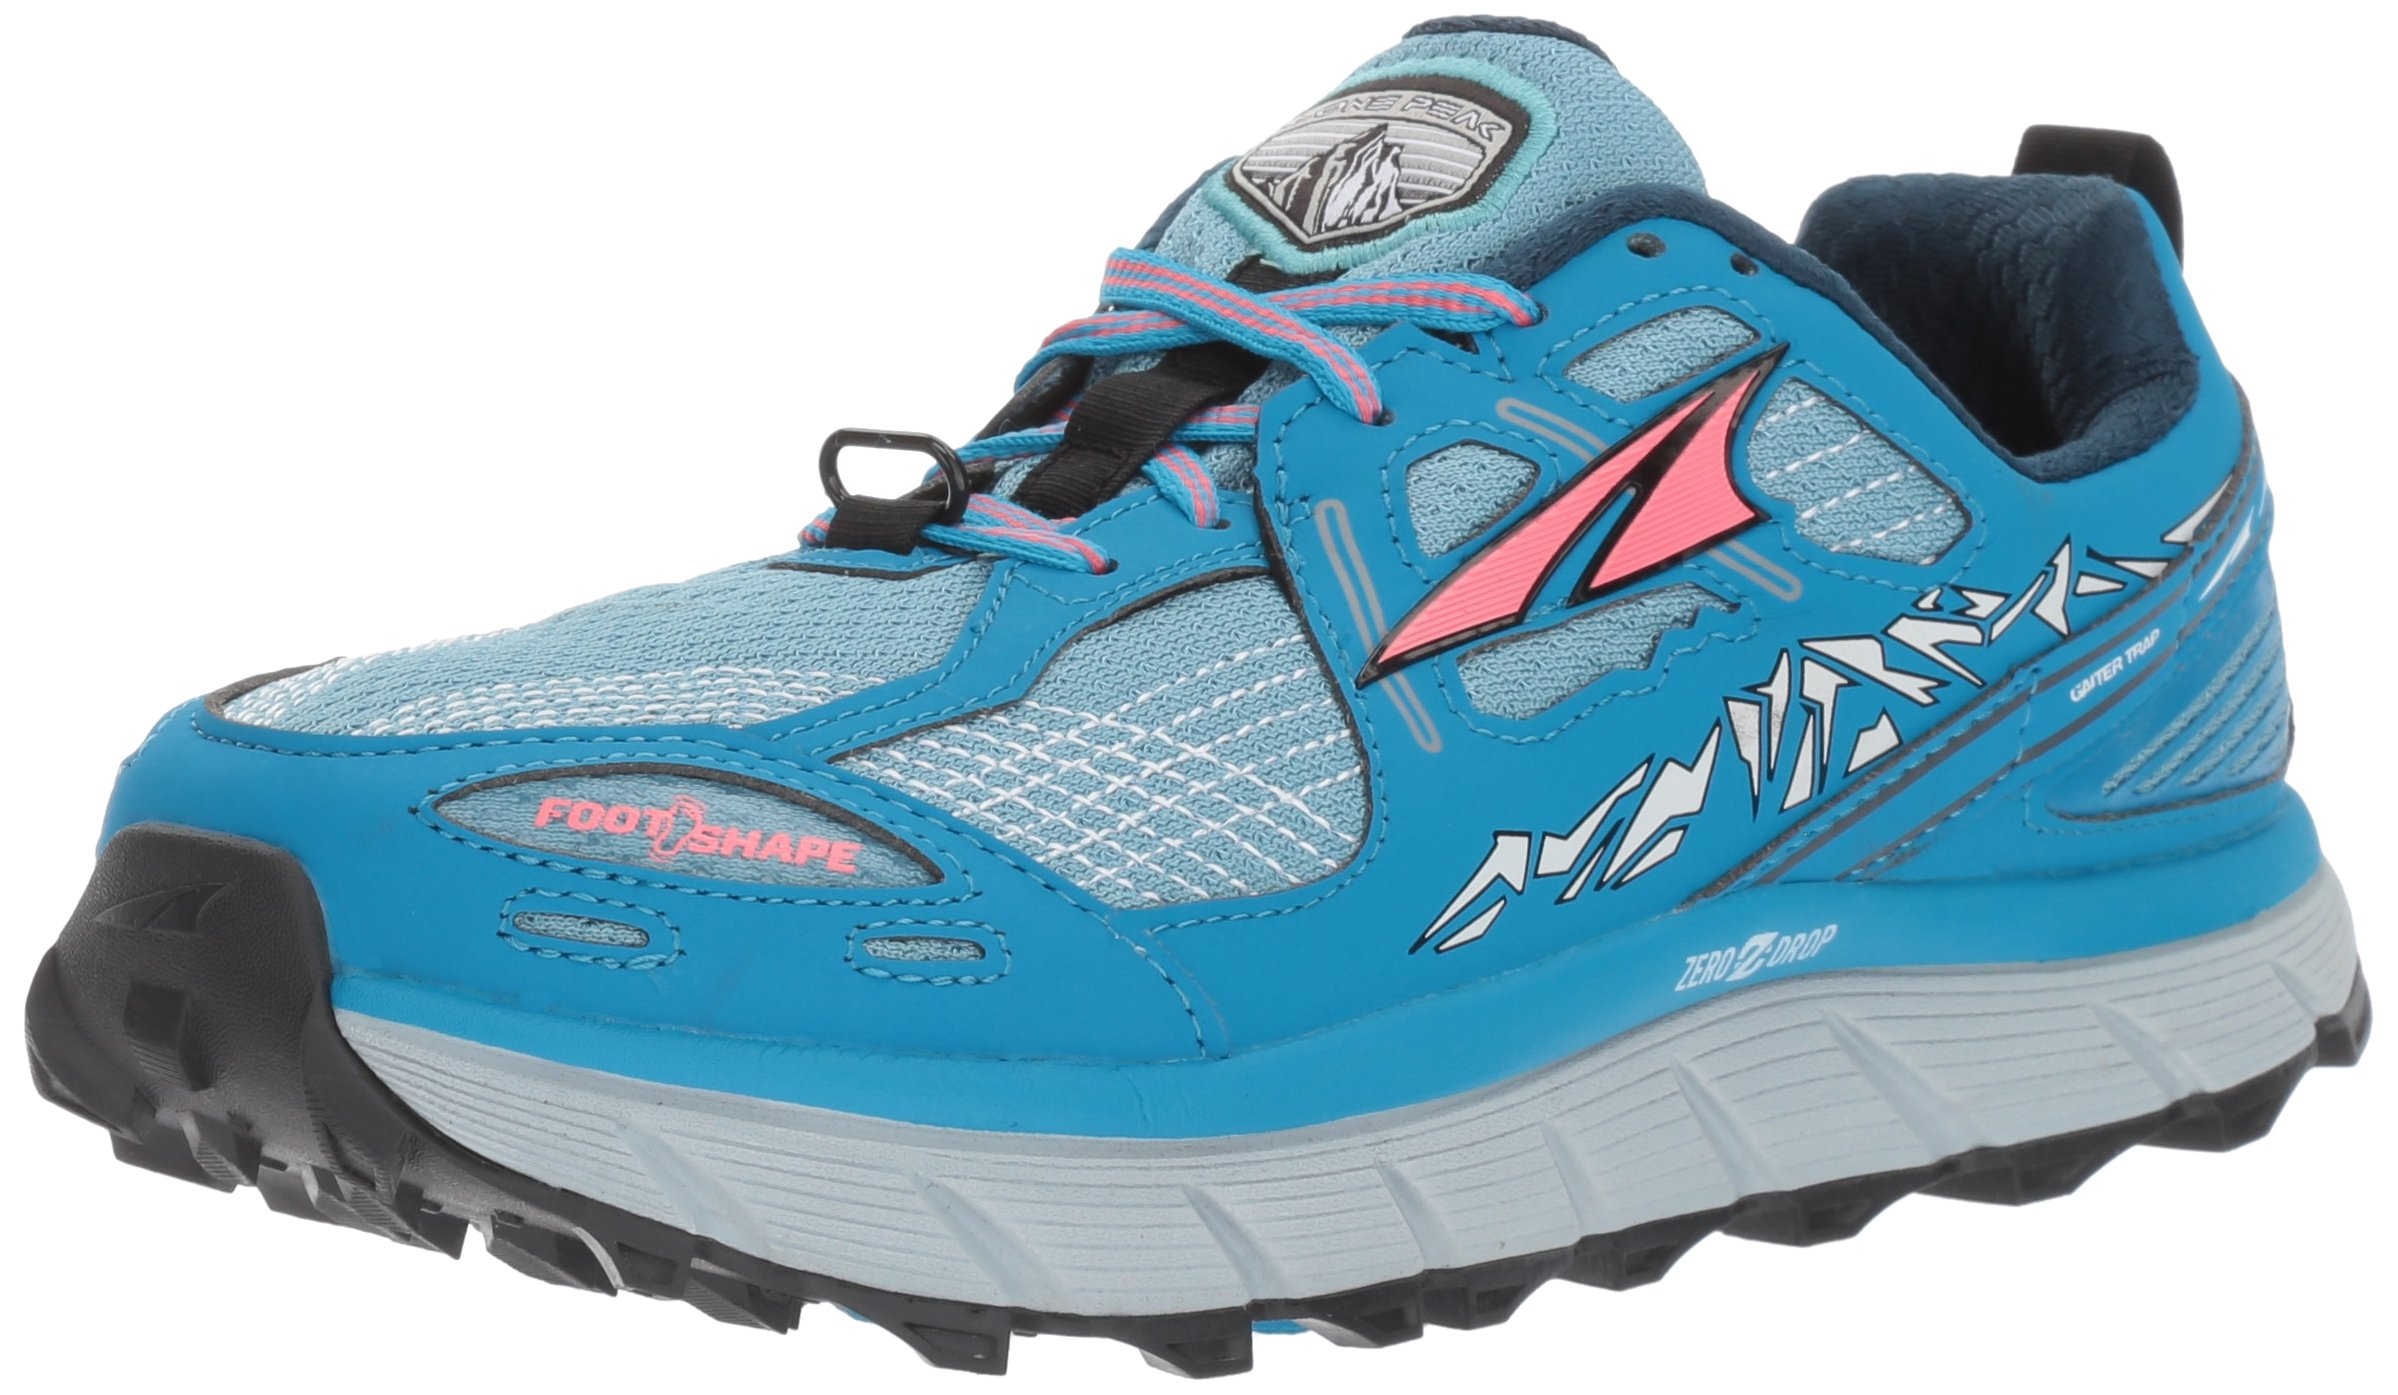 Altra Women's Lone Peak 3.5 Running Shoe, Blue, 6 B US by Altra